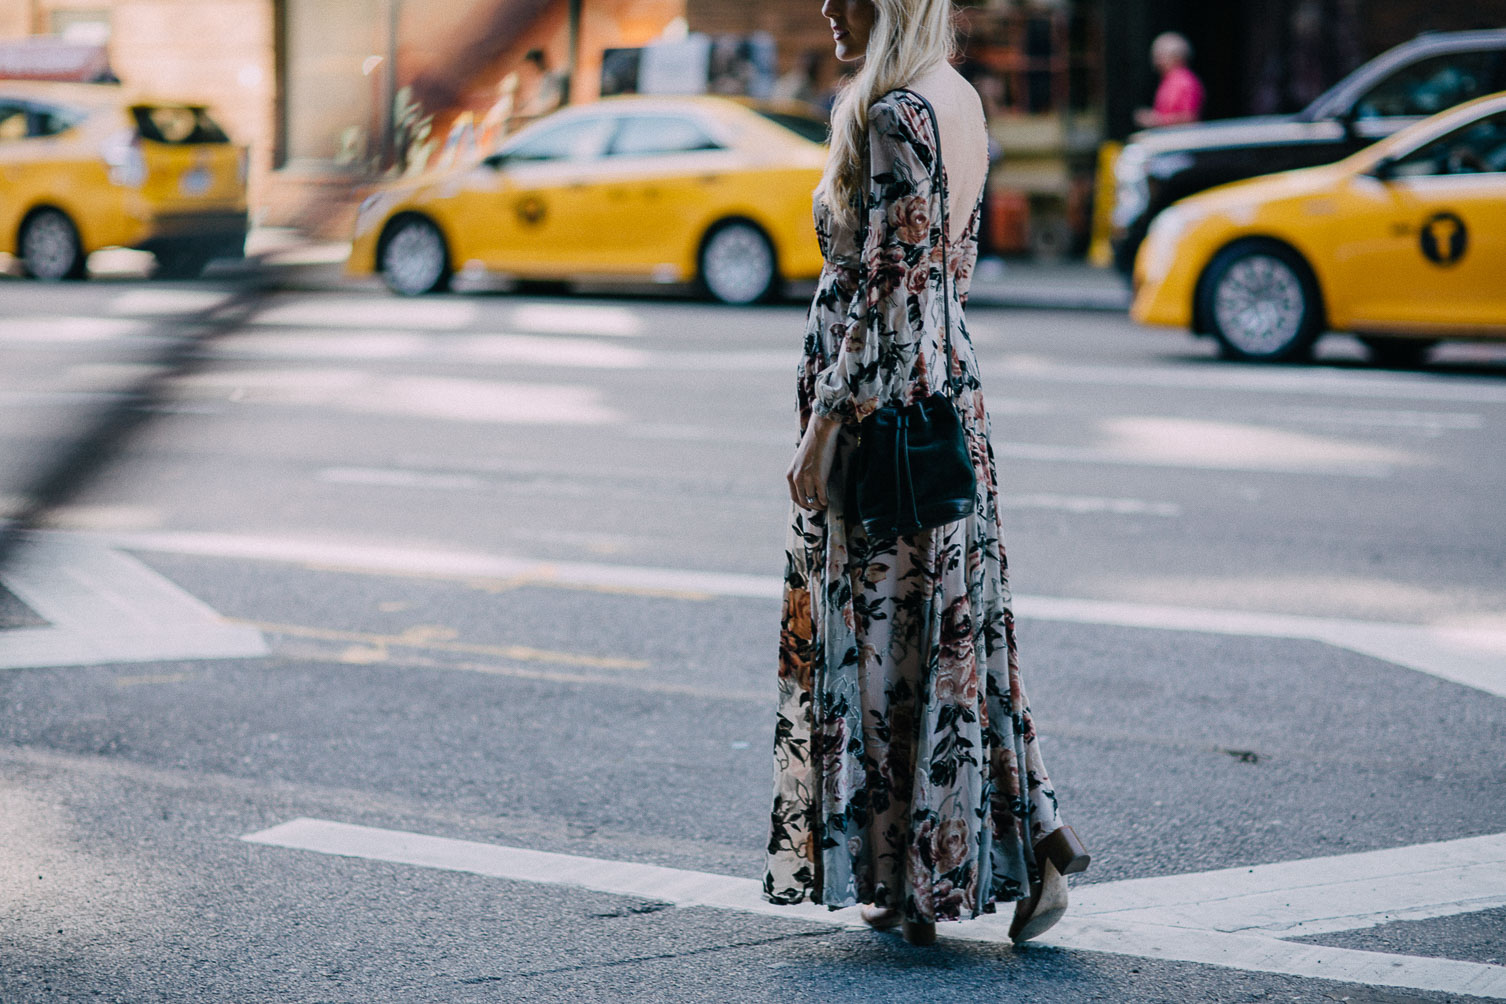 Leslie Musser SS17 NYFW street style outfit in BHLDN floral velvet gown on one brass fox